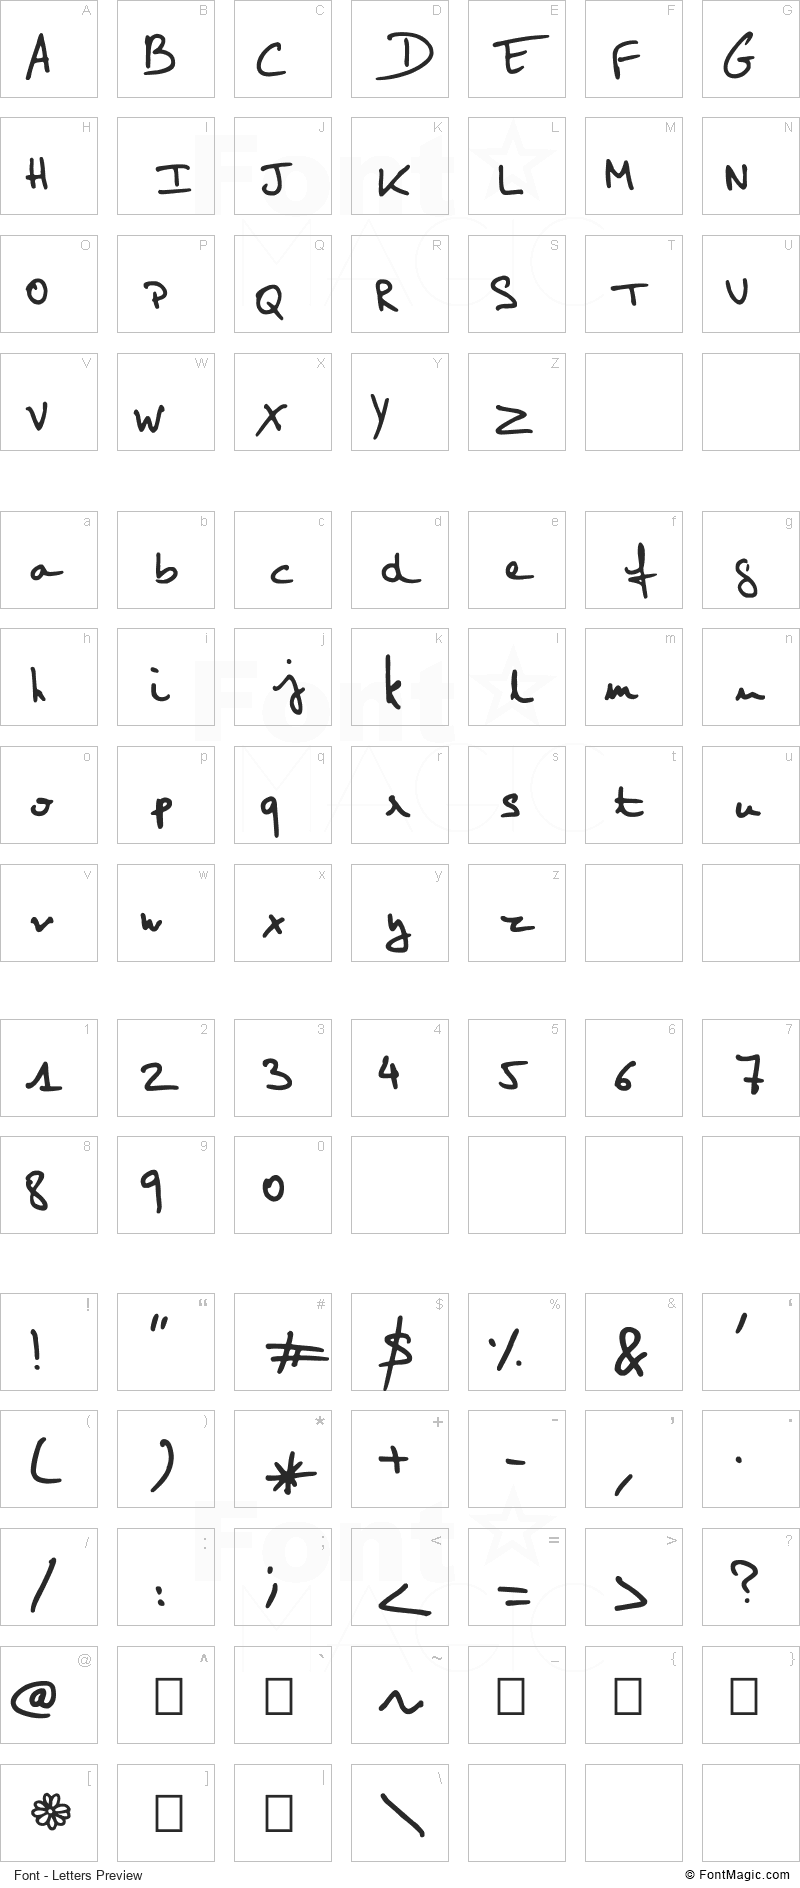 Elo Hand Font - All Latters Preview Chart